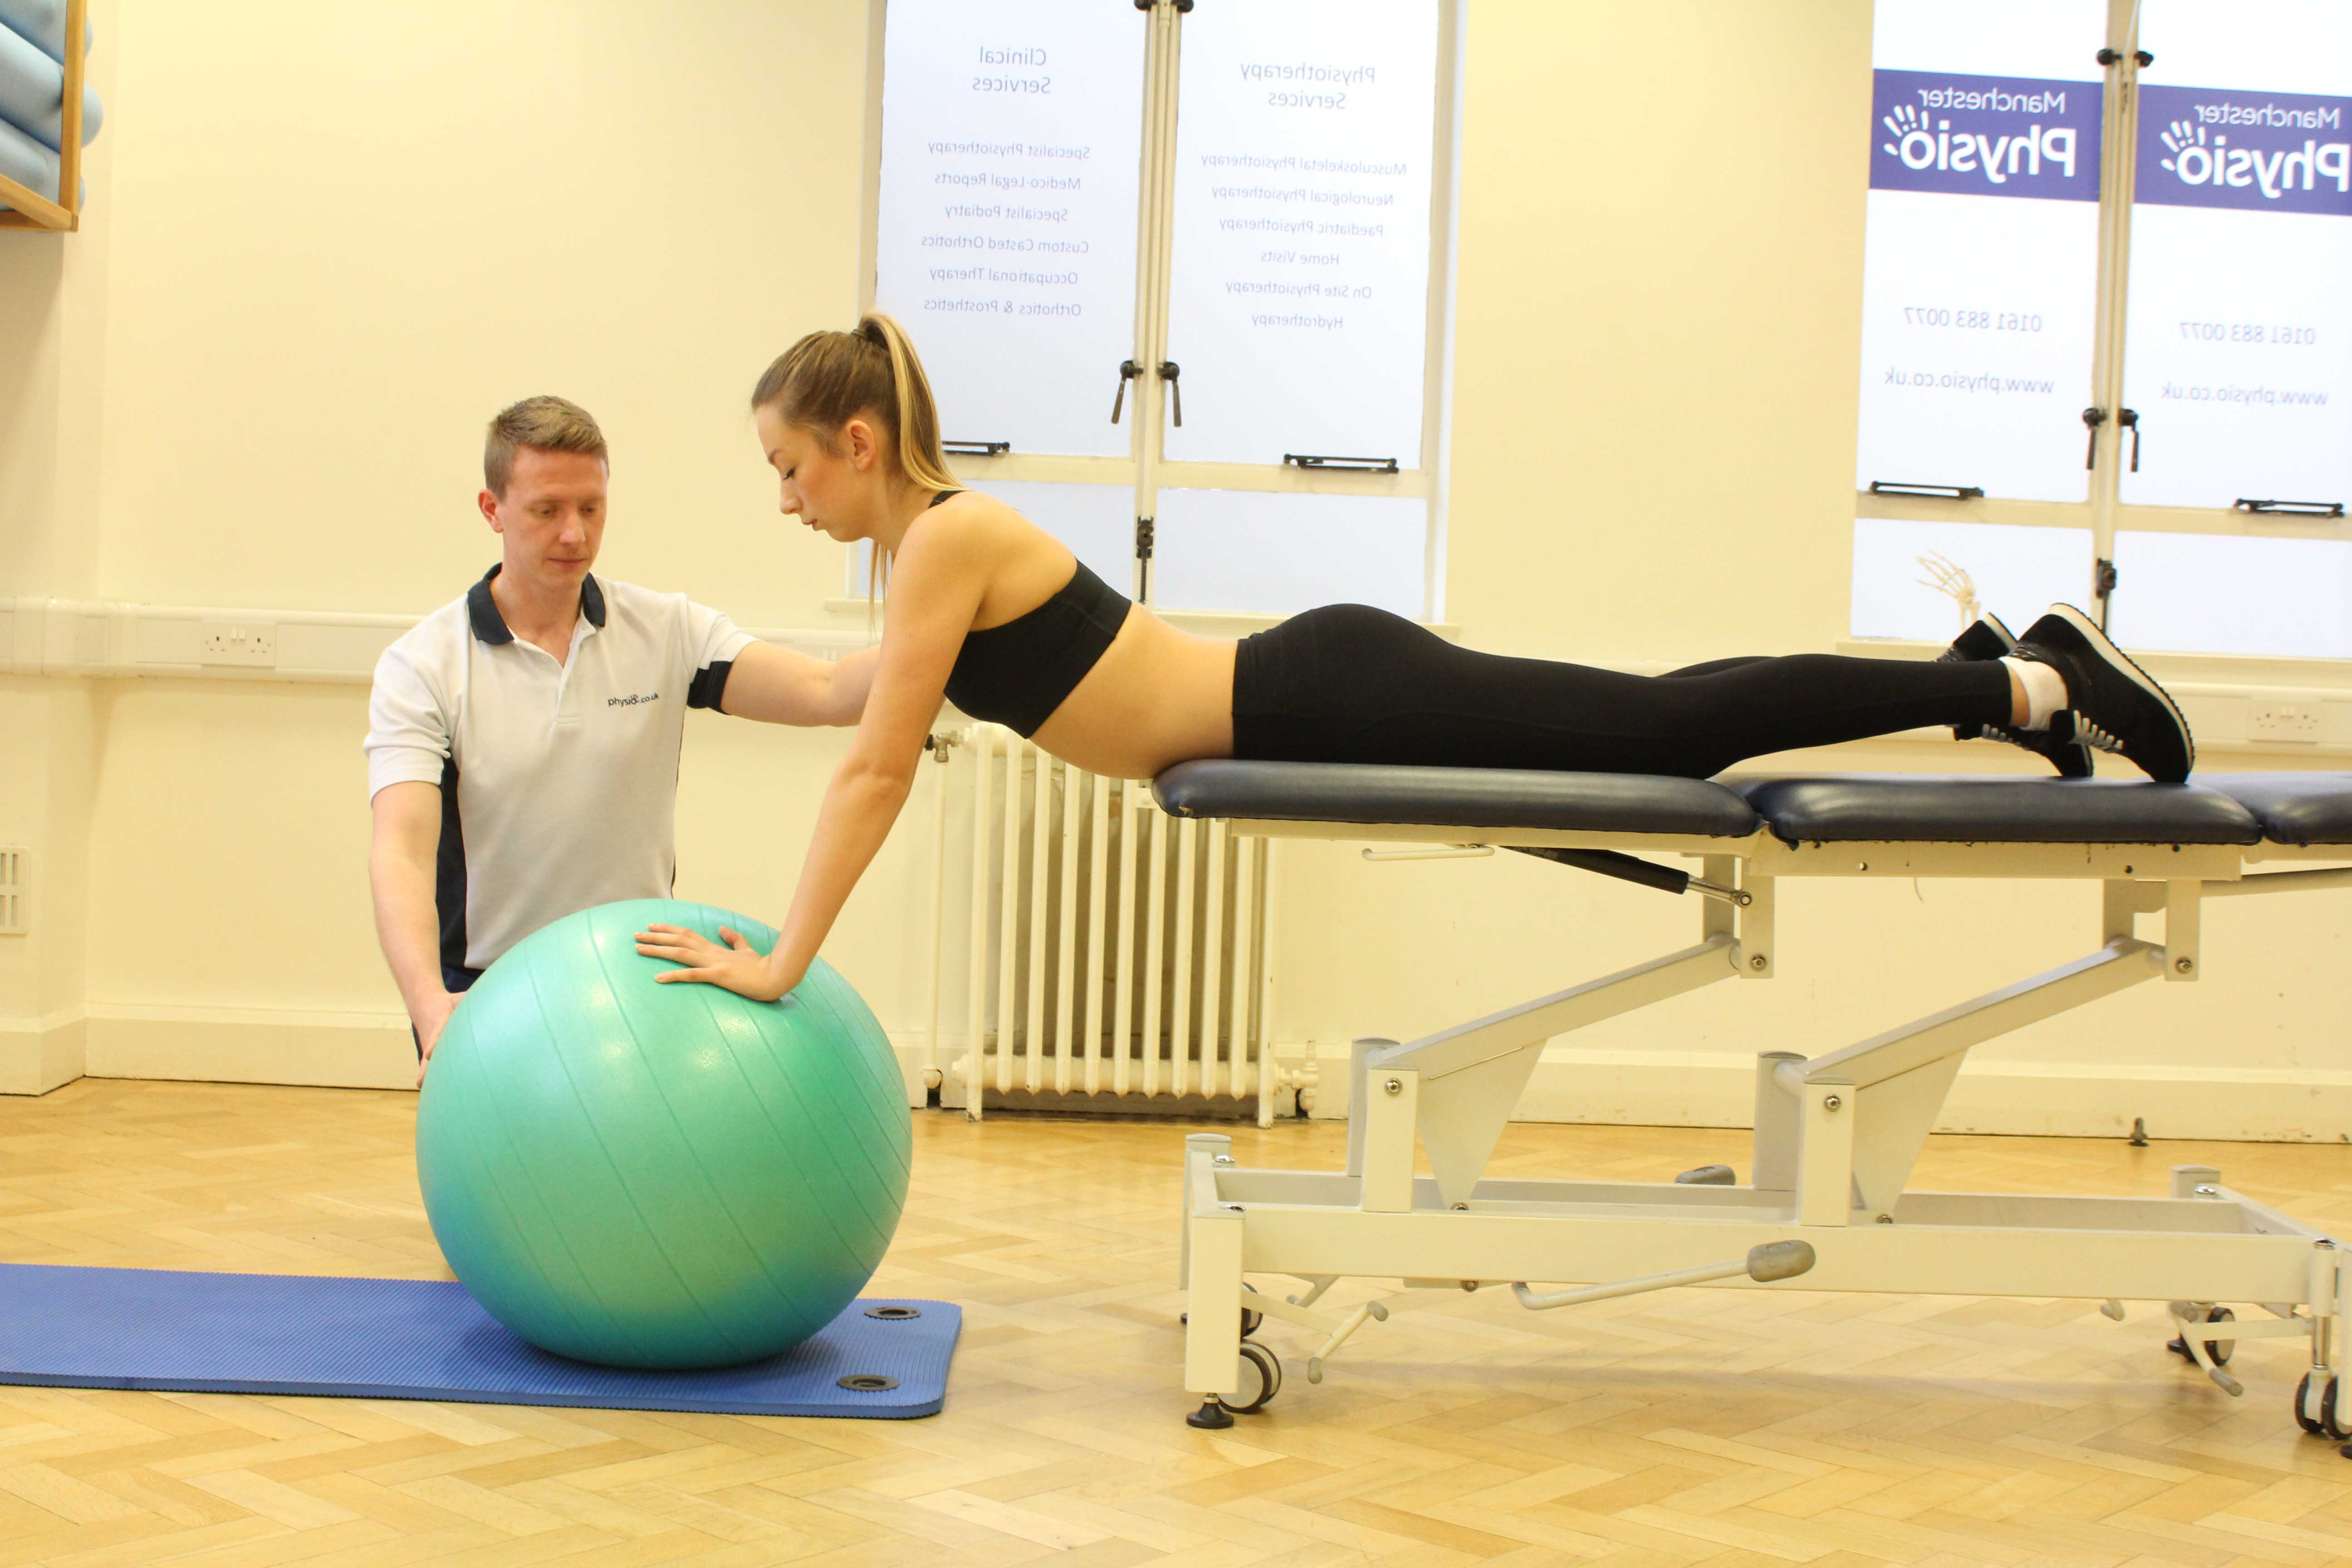 Progressive strengthening exercises for the lower back supervised by an experienced therapist